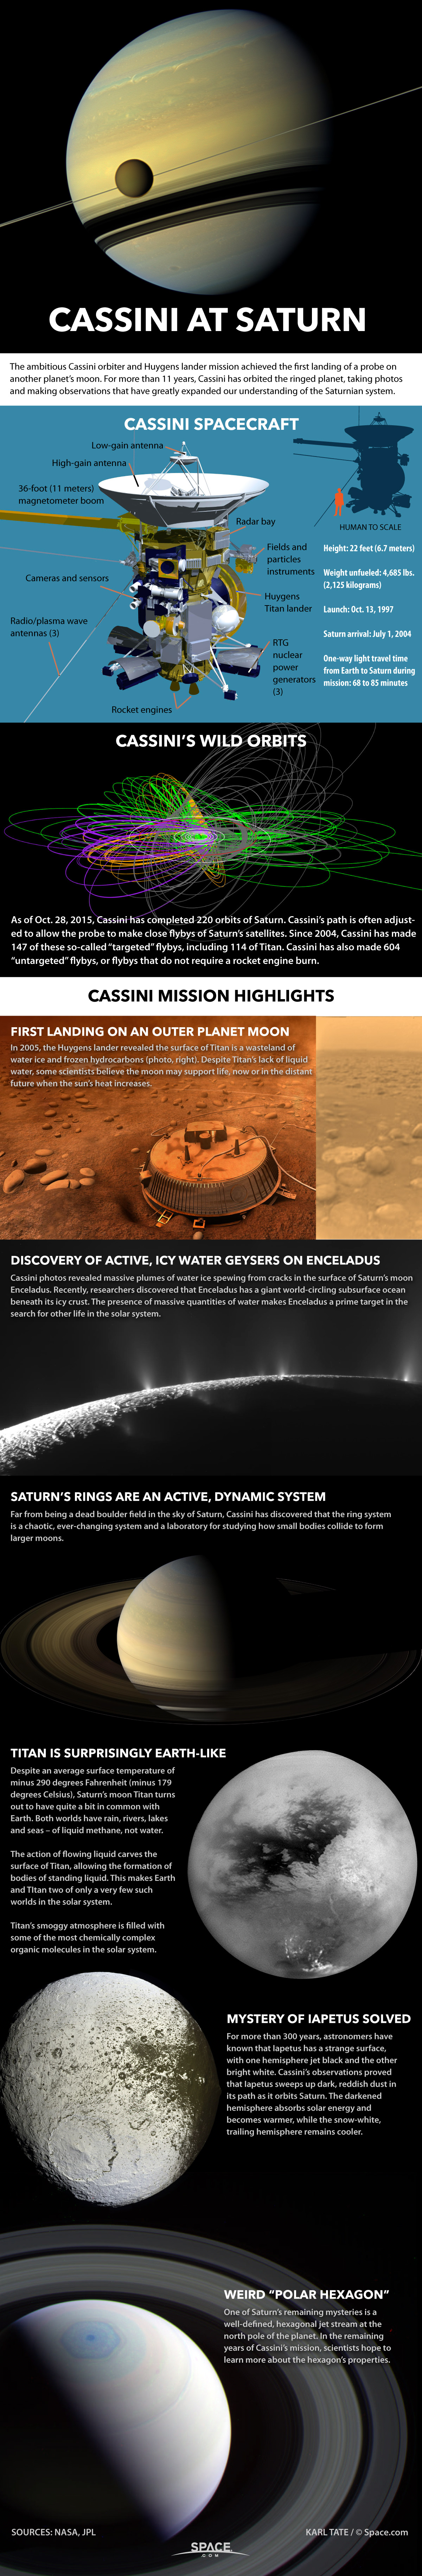 Details Cassini space probe and its discoveries.